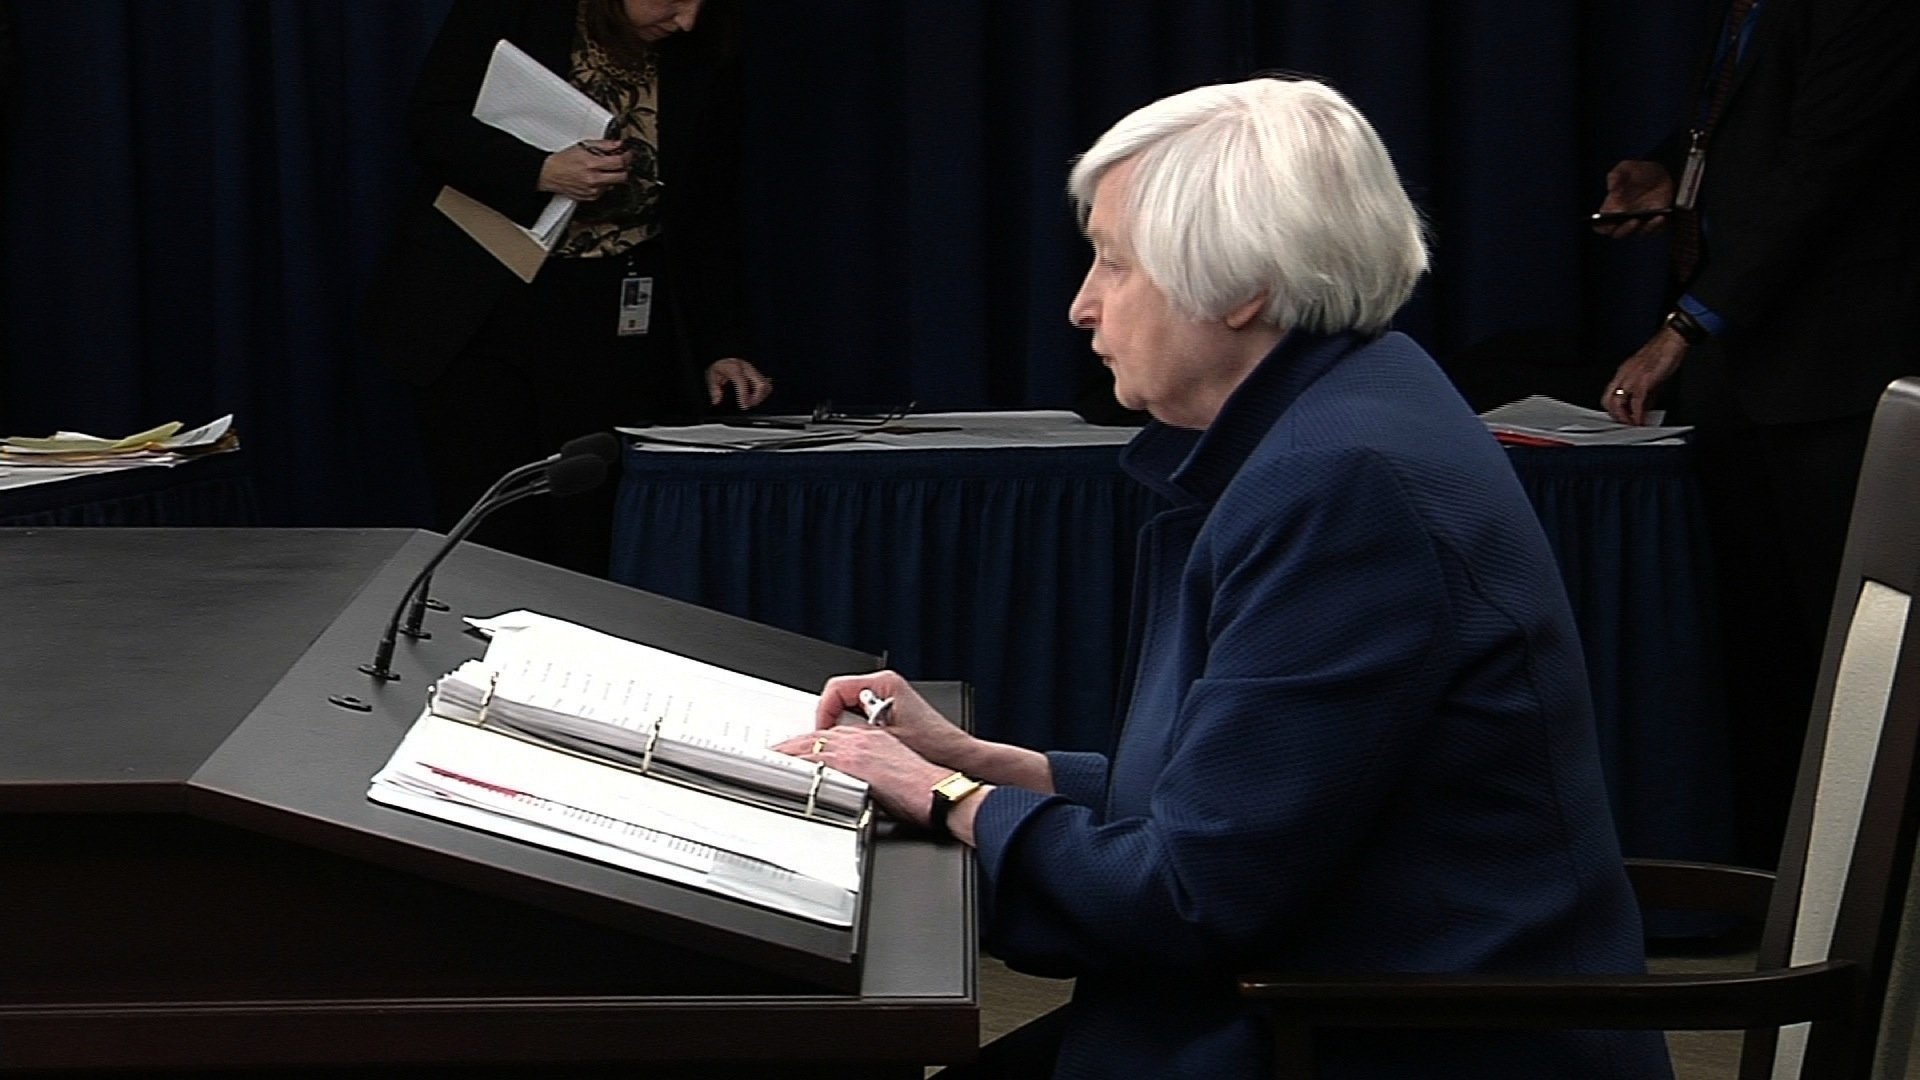 Fed raises rates for the 3rd time amid signs of strengthening economy